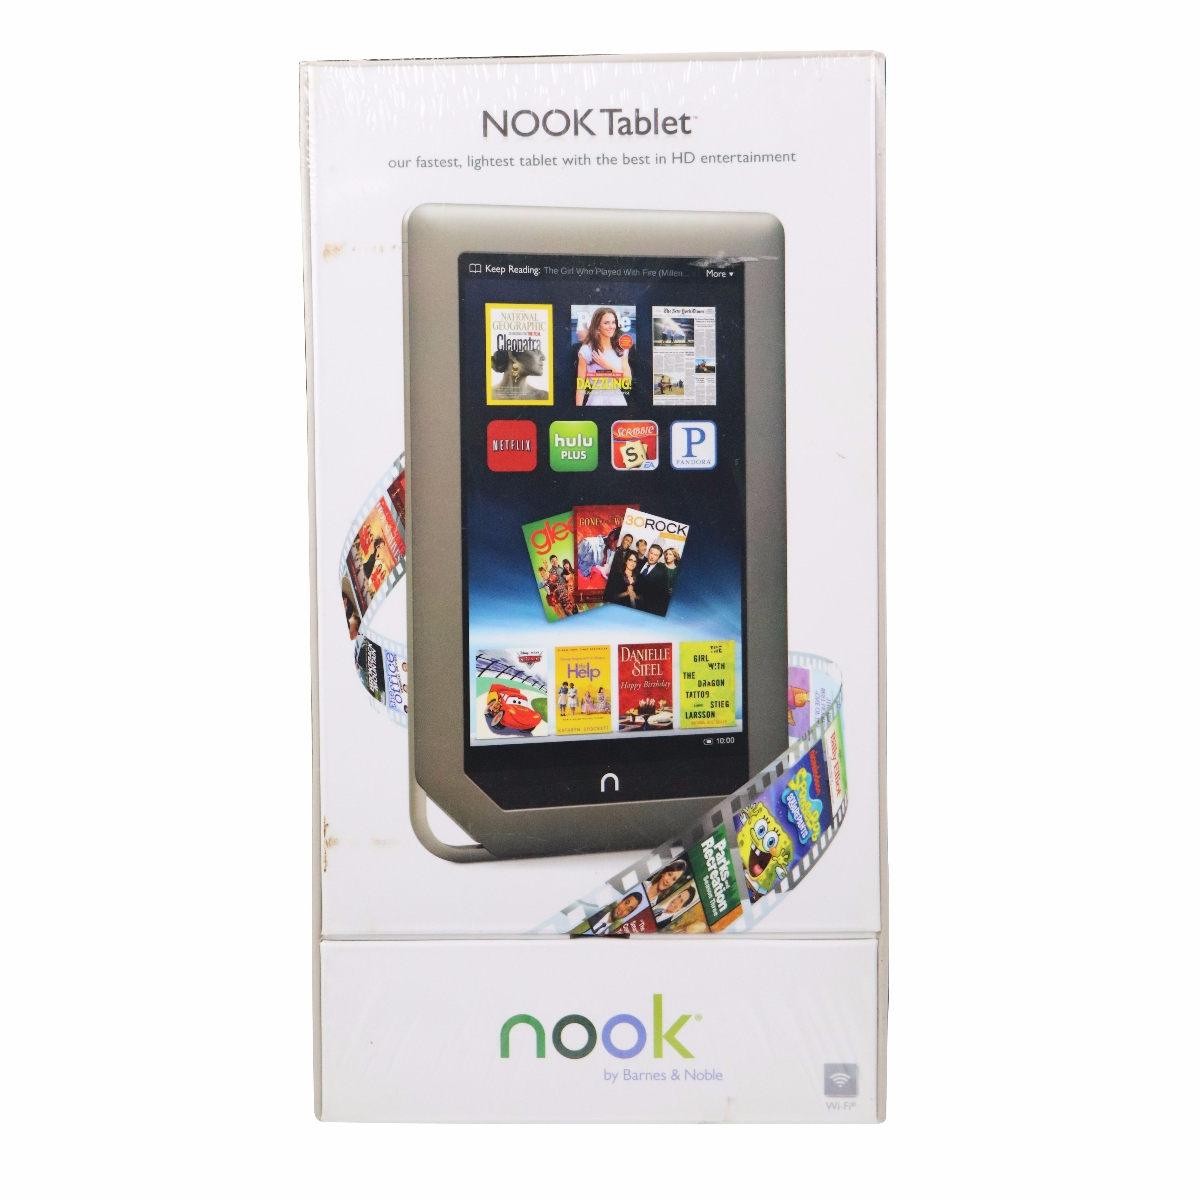 "Barnes & Noble Nook BNTV250 with Wi-Fi 7.0"" 1GHz 16GB Touchscreen Tablet PC Android OS"